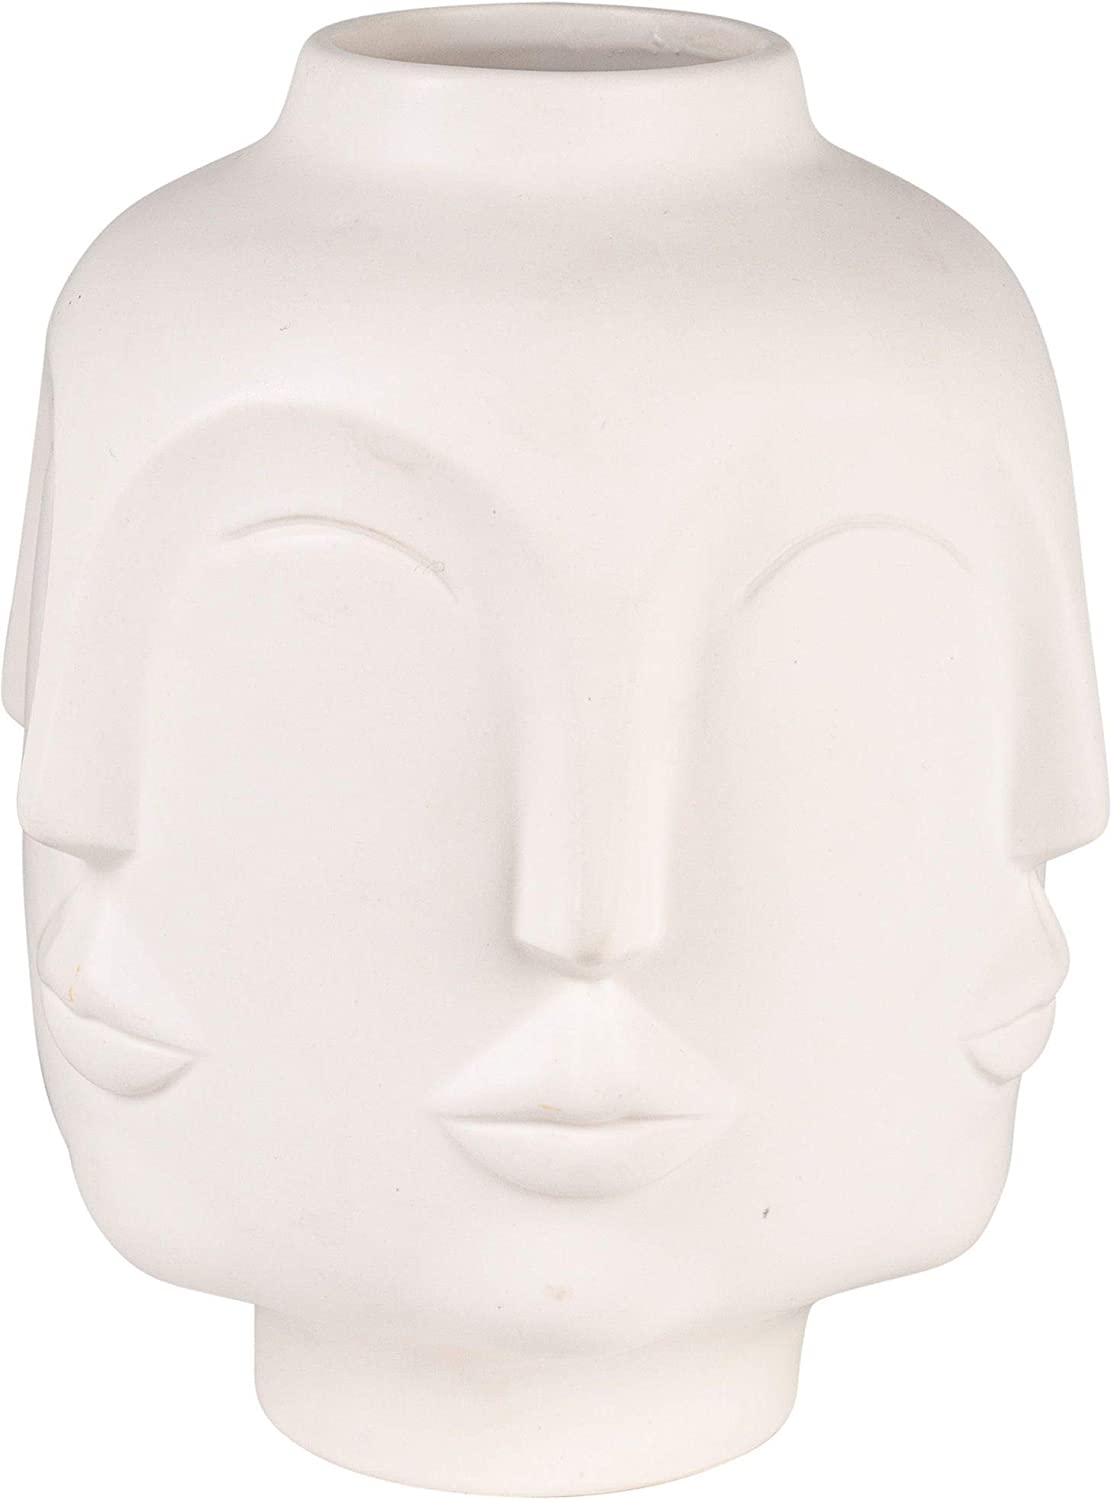 Home Essentials 28439 Multi Facial Vase, 7-inch Height